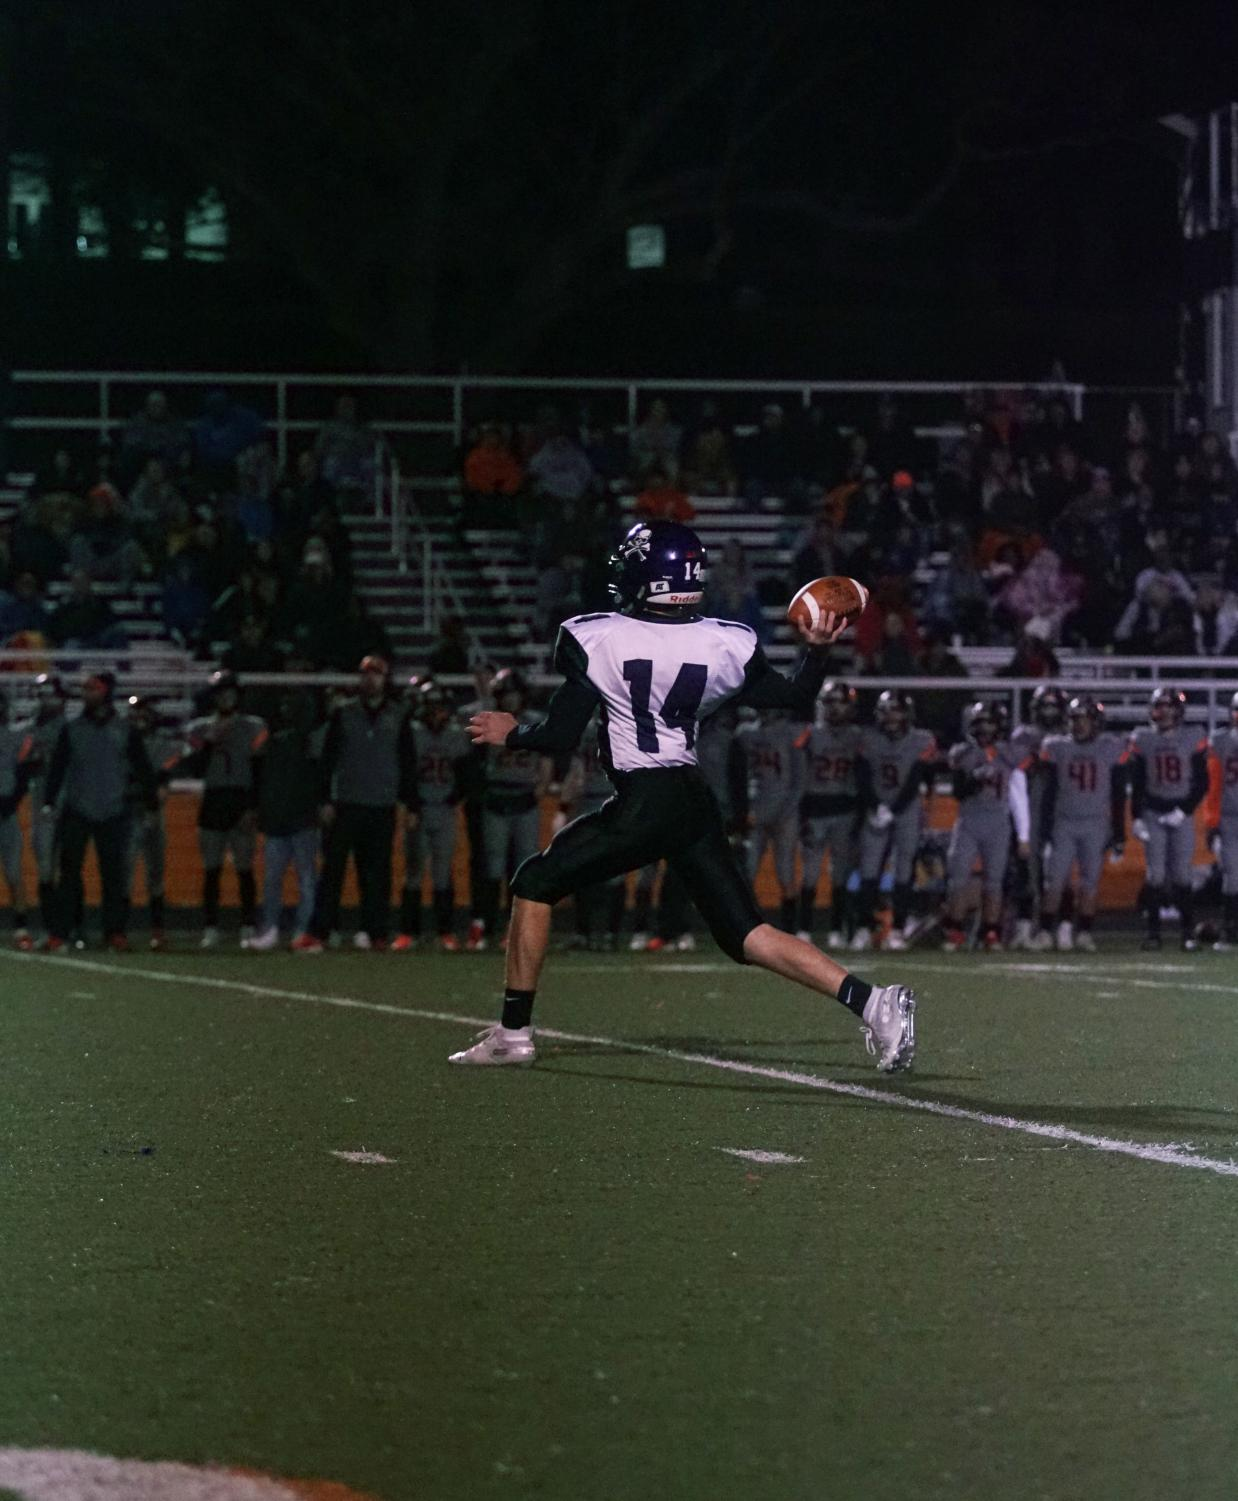 Freshman Logan Ladish throws to an open receiver for a first down in the second quarter.